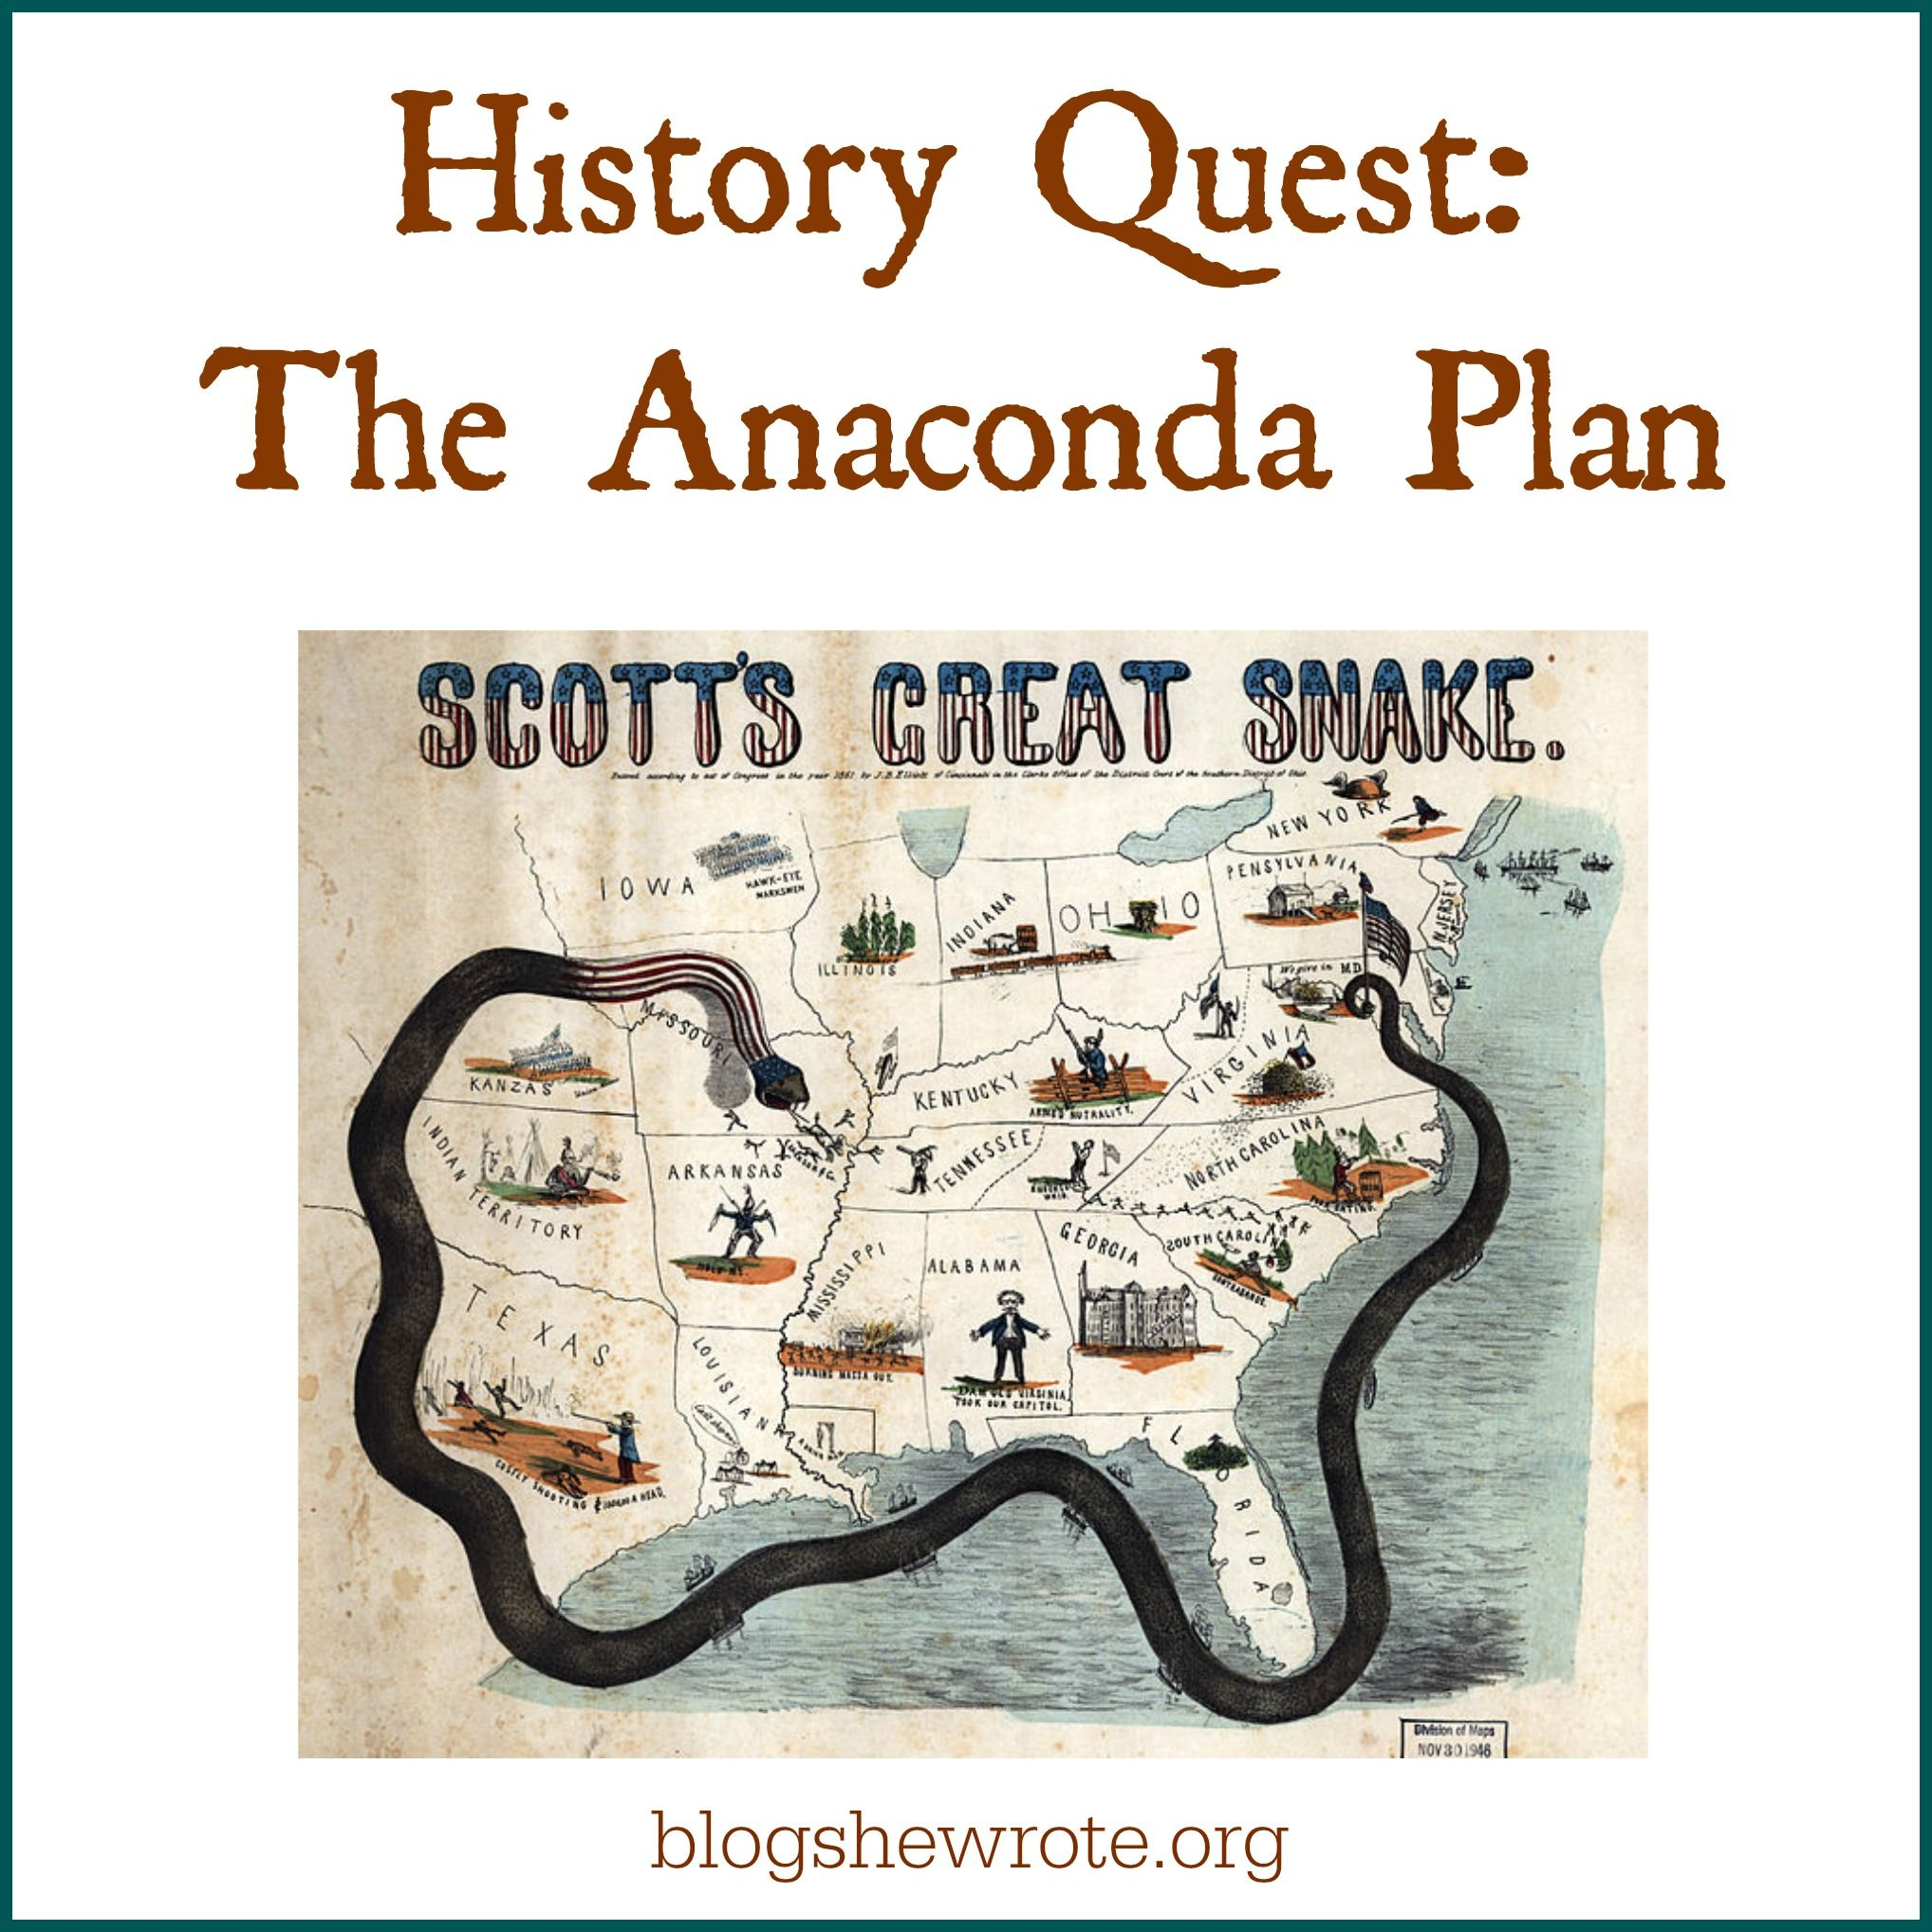 History Quest The Anaconda Plan